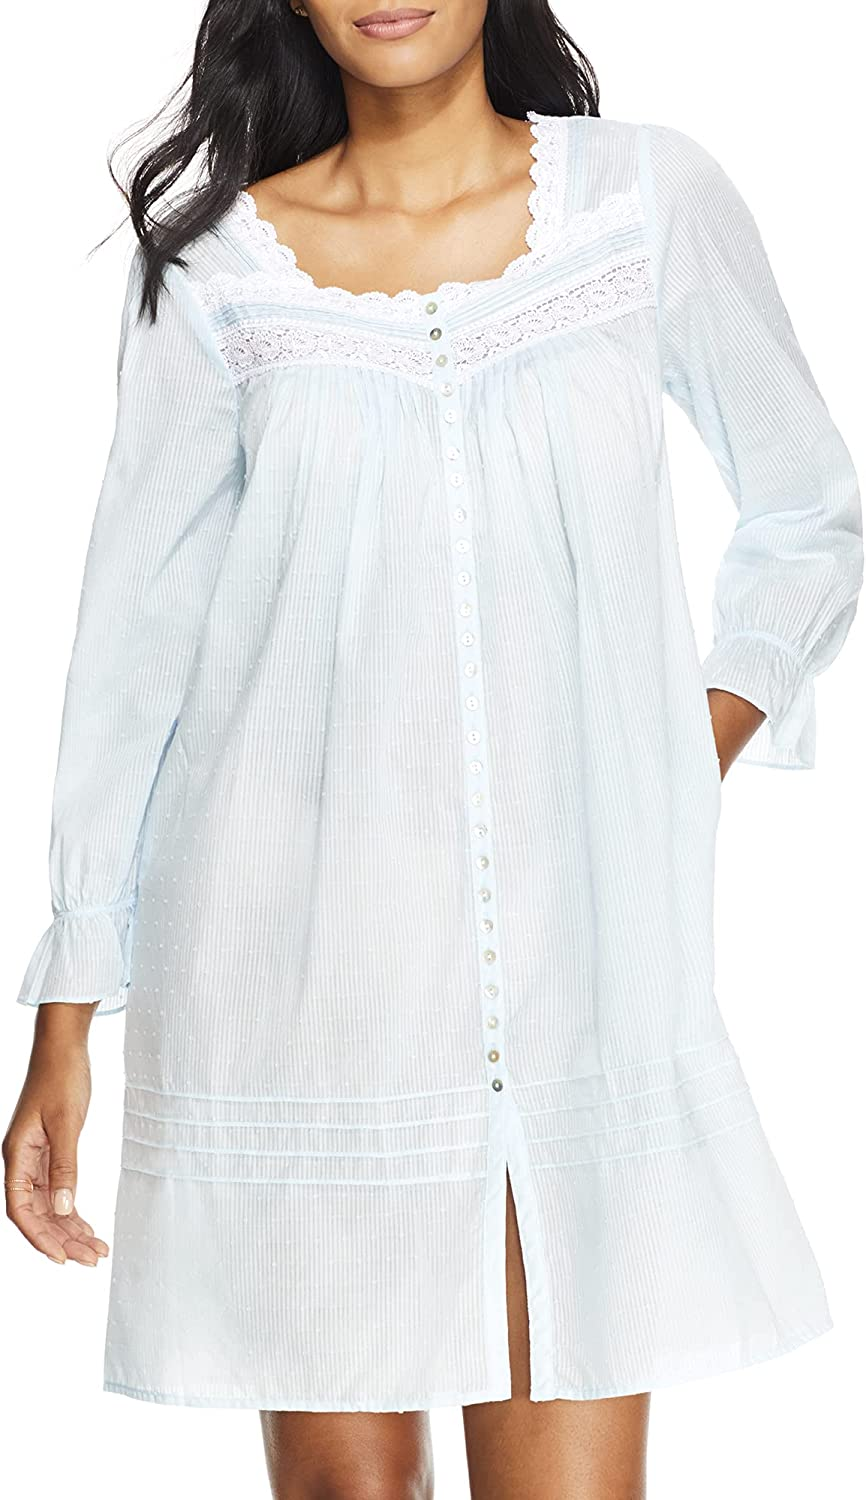 Swiss Dot Max 85% OFF Complete Free Shipping Button-Front Woven Short Robe